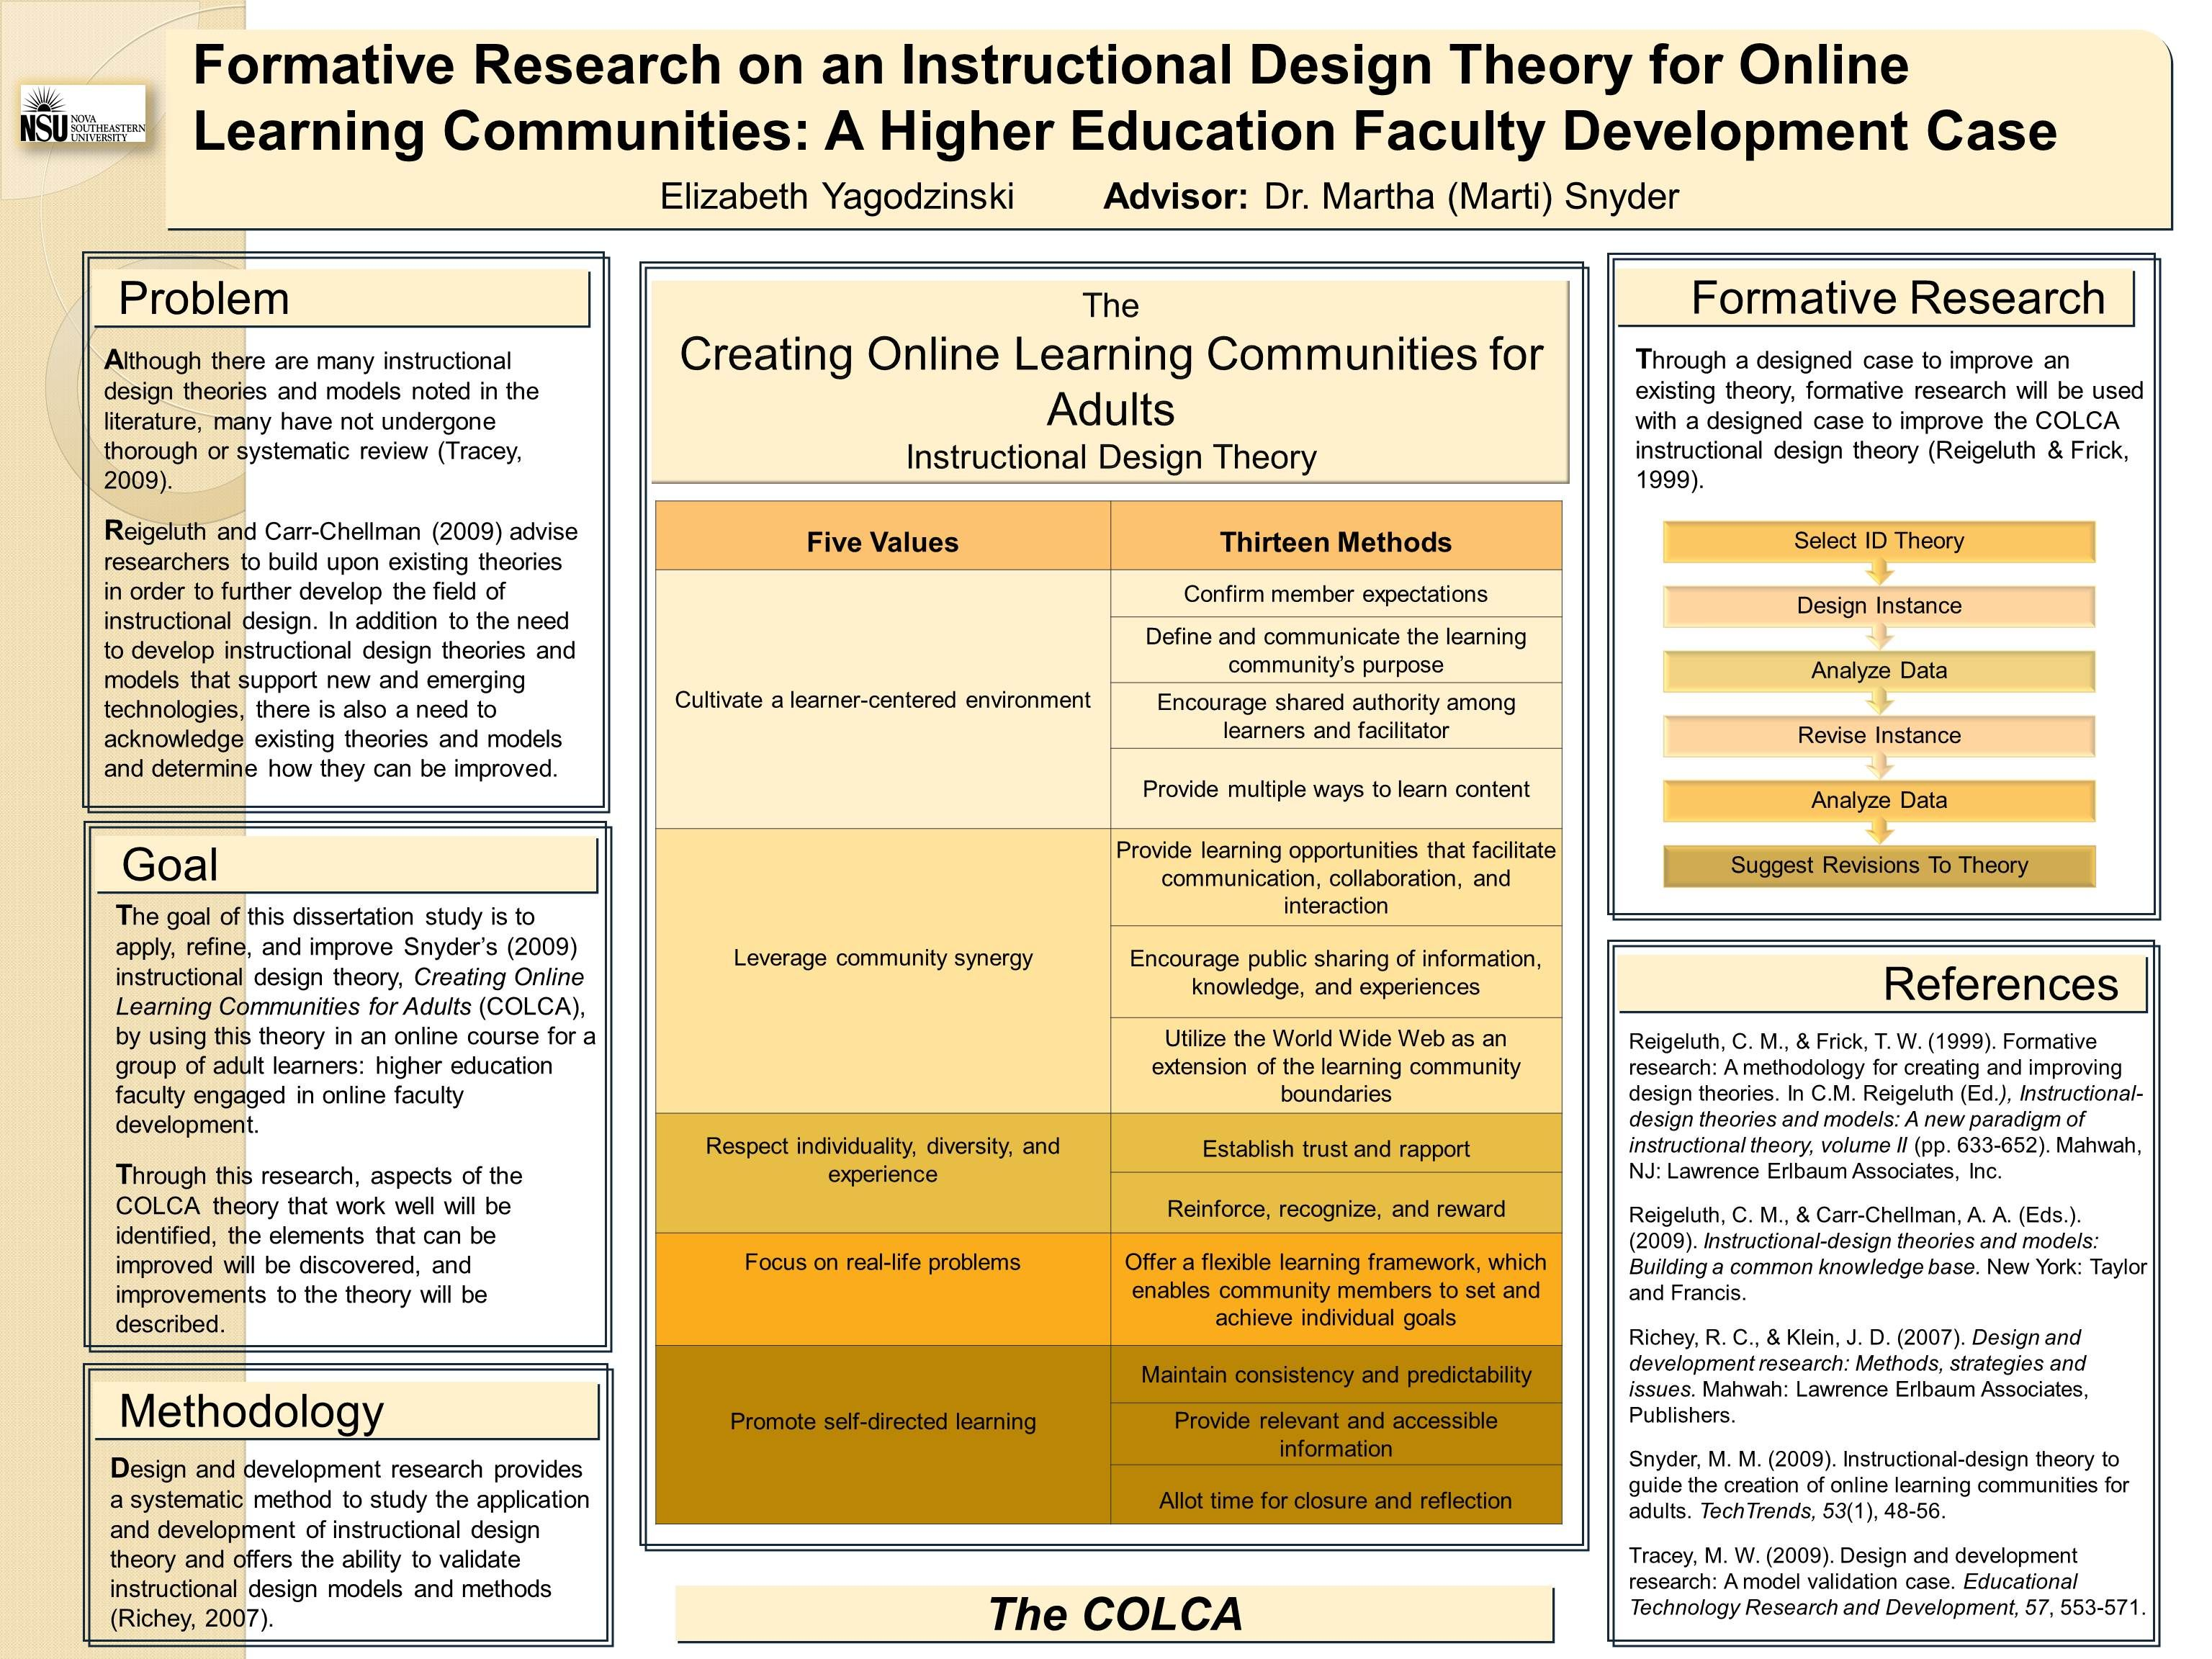 Formative Research For An Instructional Design Theory Research